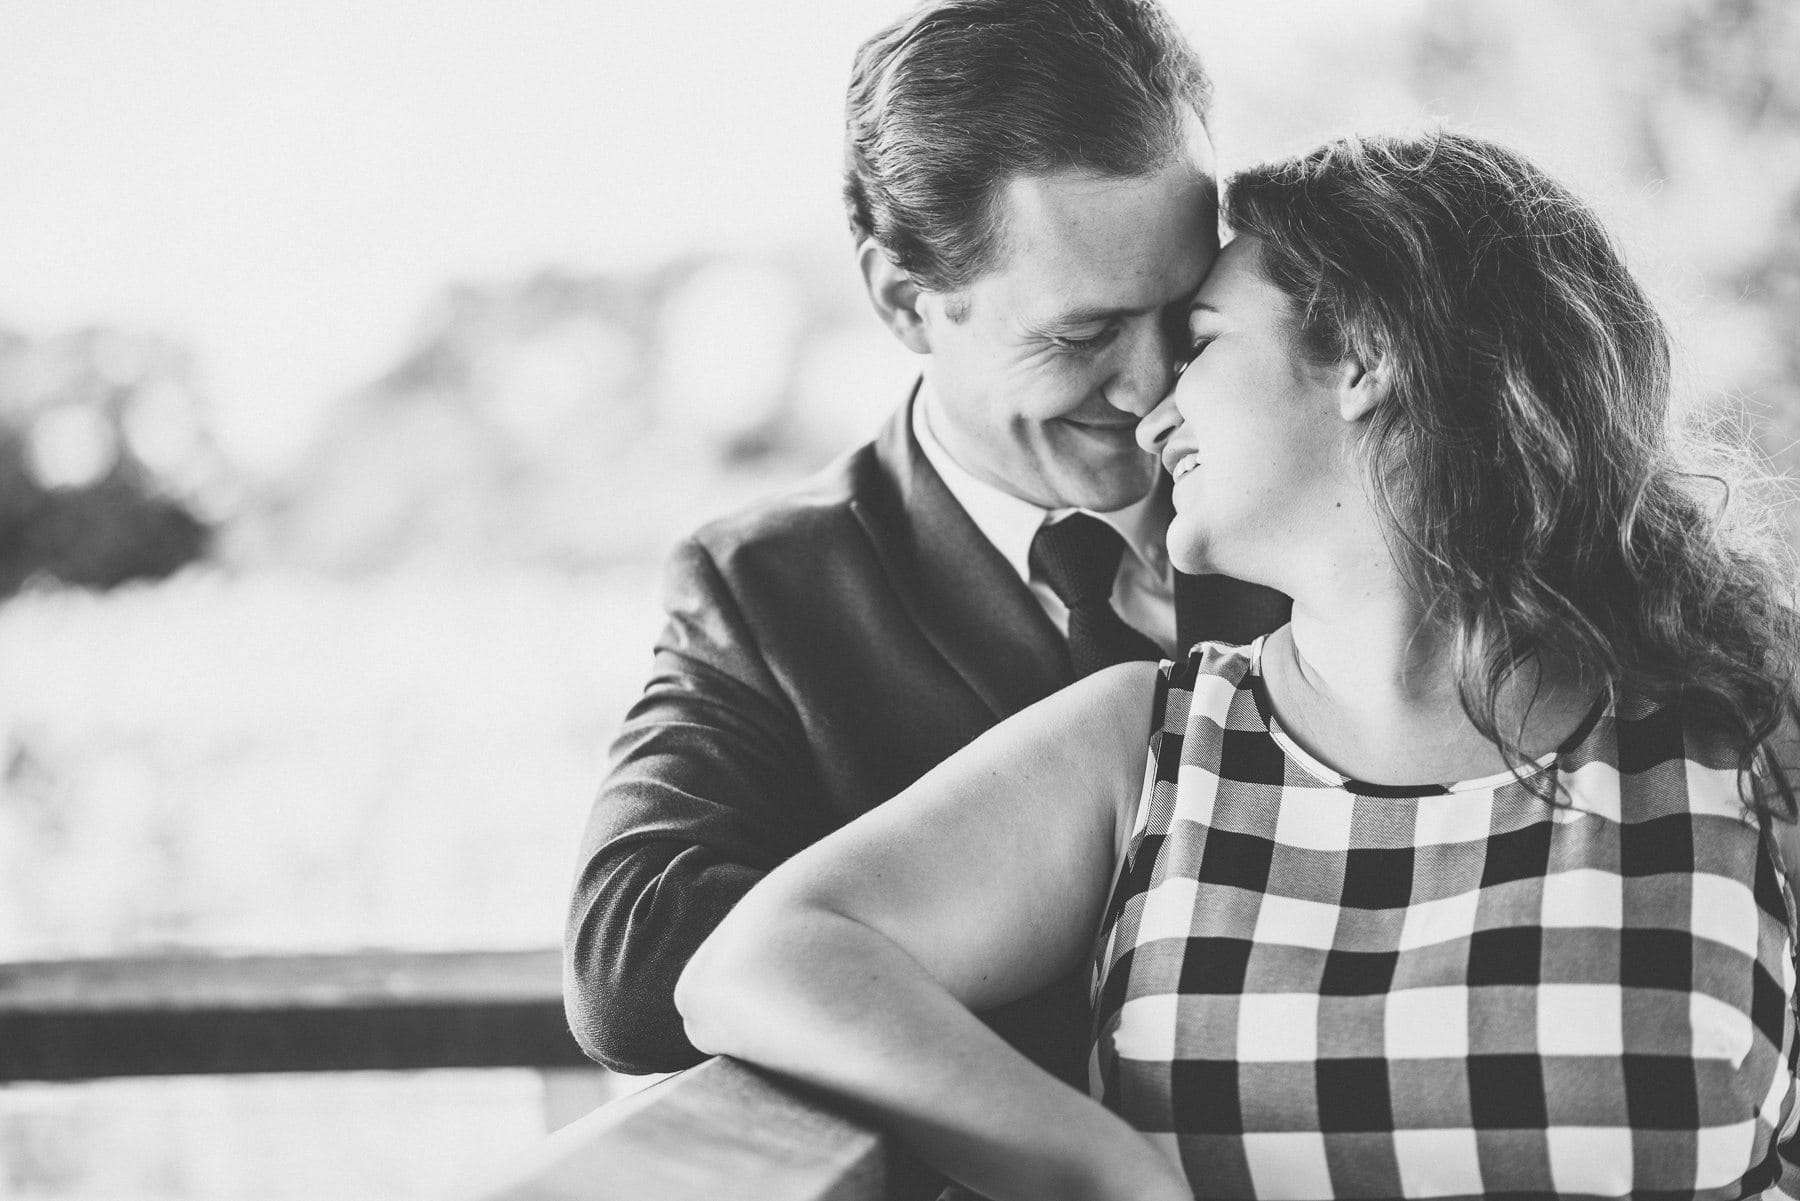 black and white photo of an engaged couple leaning in closely at Farnham Castle Keep Well railing by natural alternative fun wedding photographer Maria Assia Photography